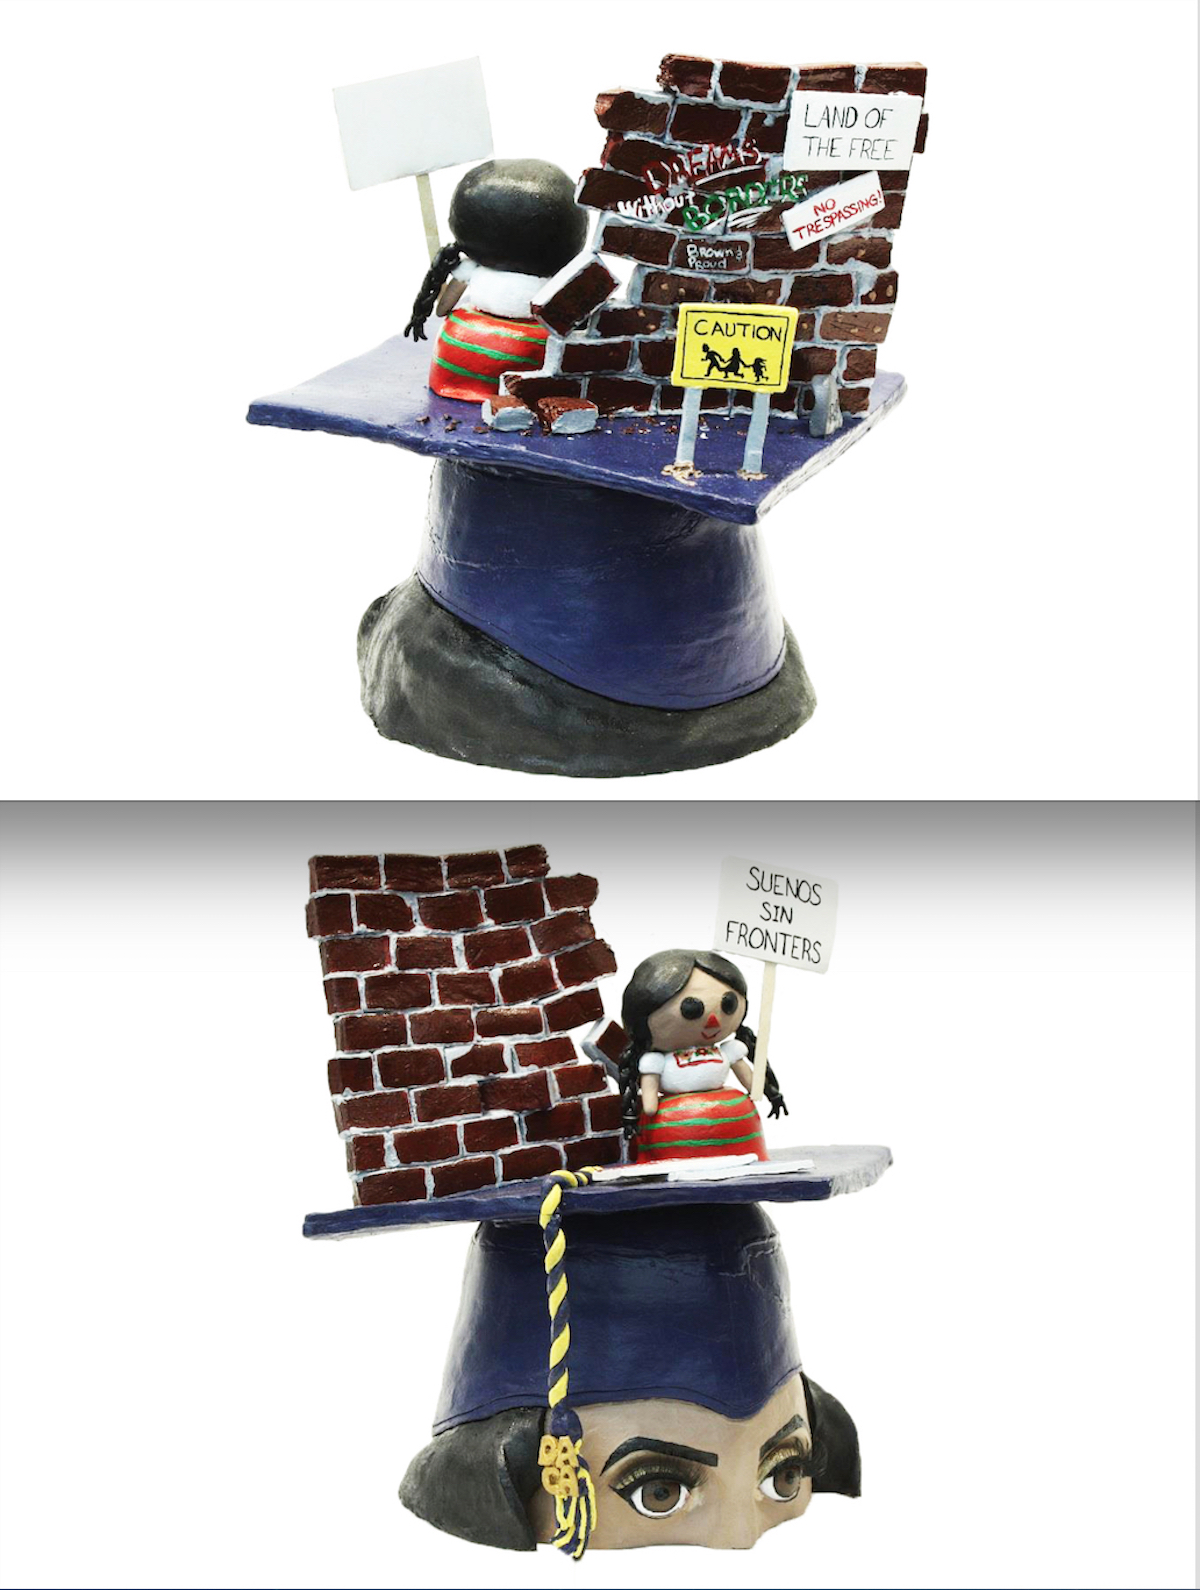 3D ceramic sculpture of young girl in front of brick wall on top of mortarboard graduation cap on a female head with black hair and dark eyes.